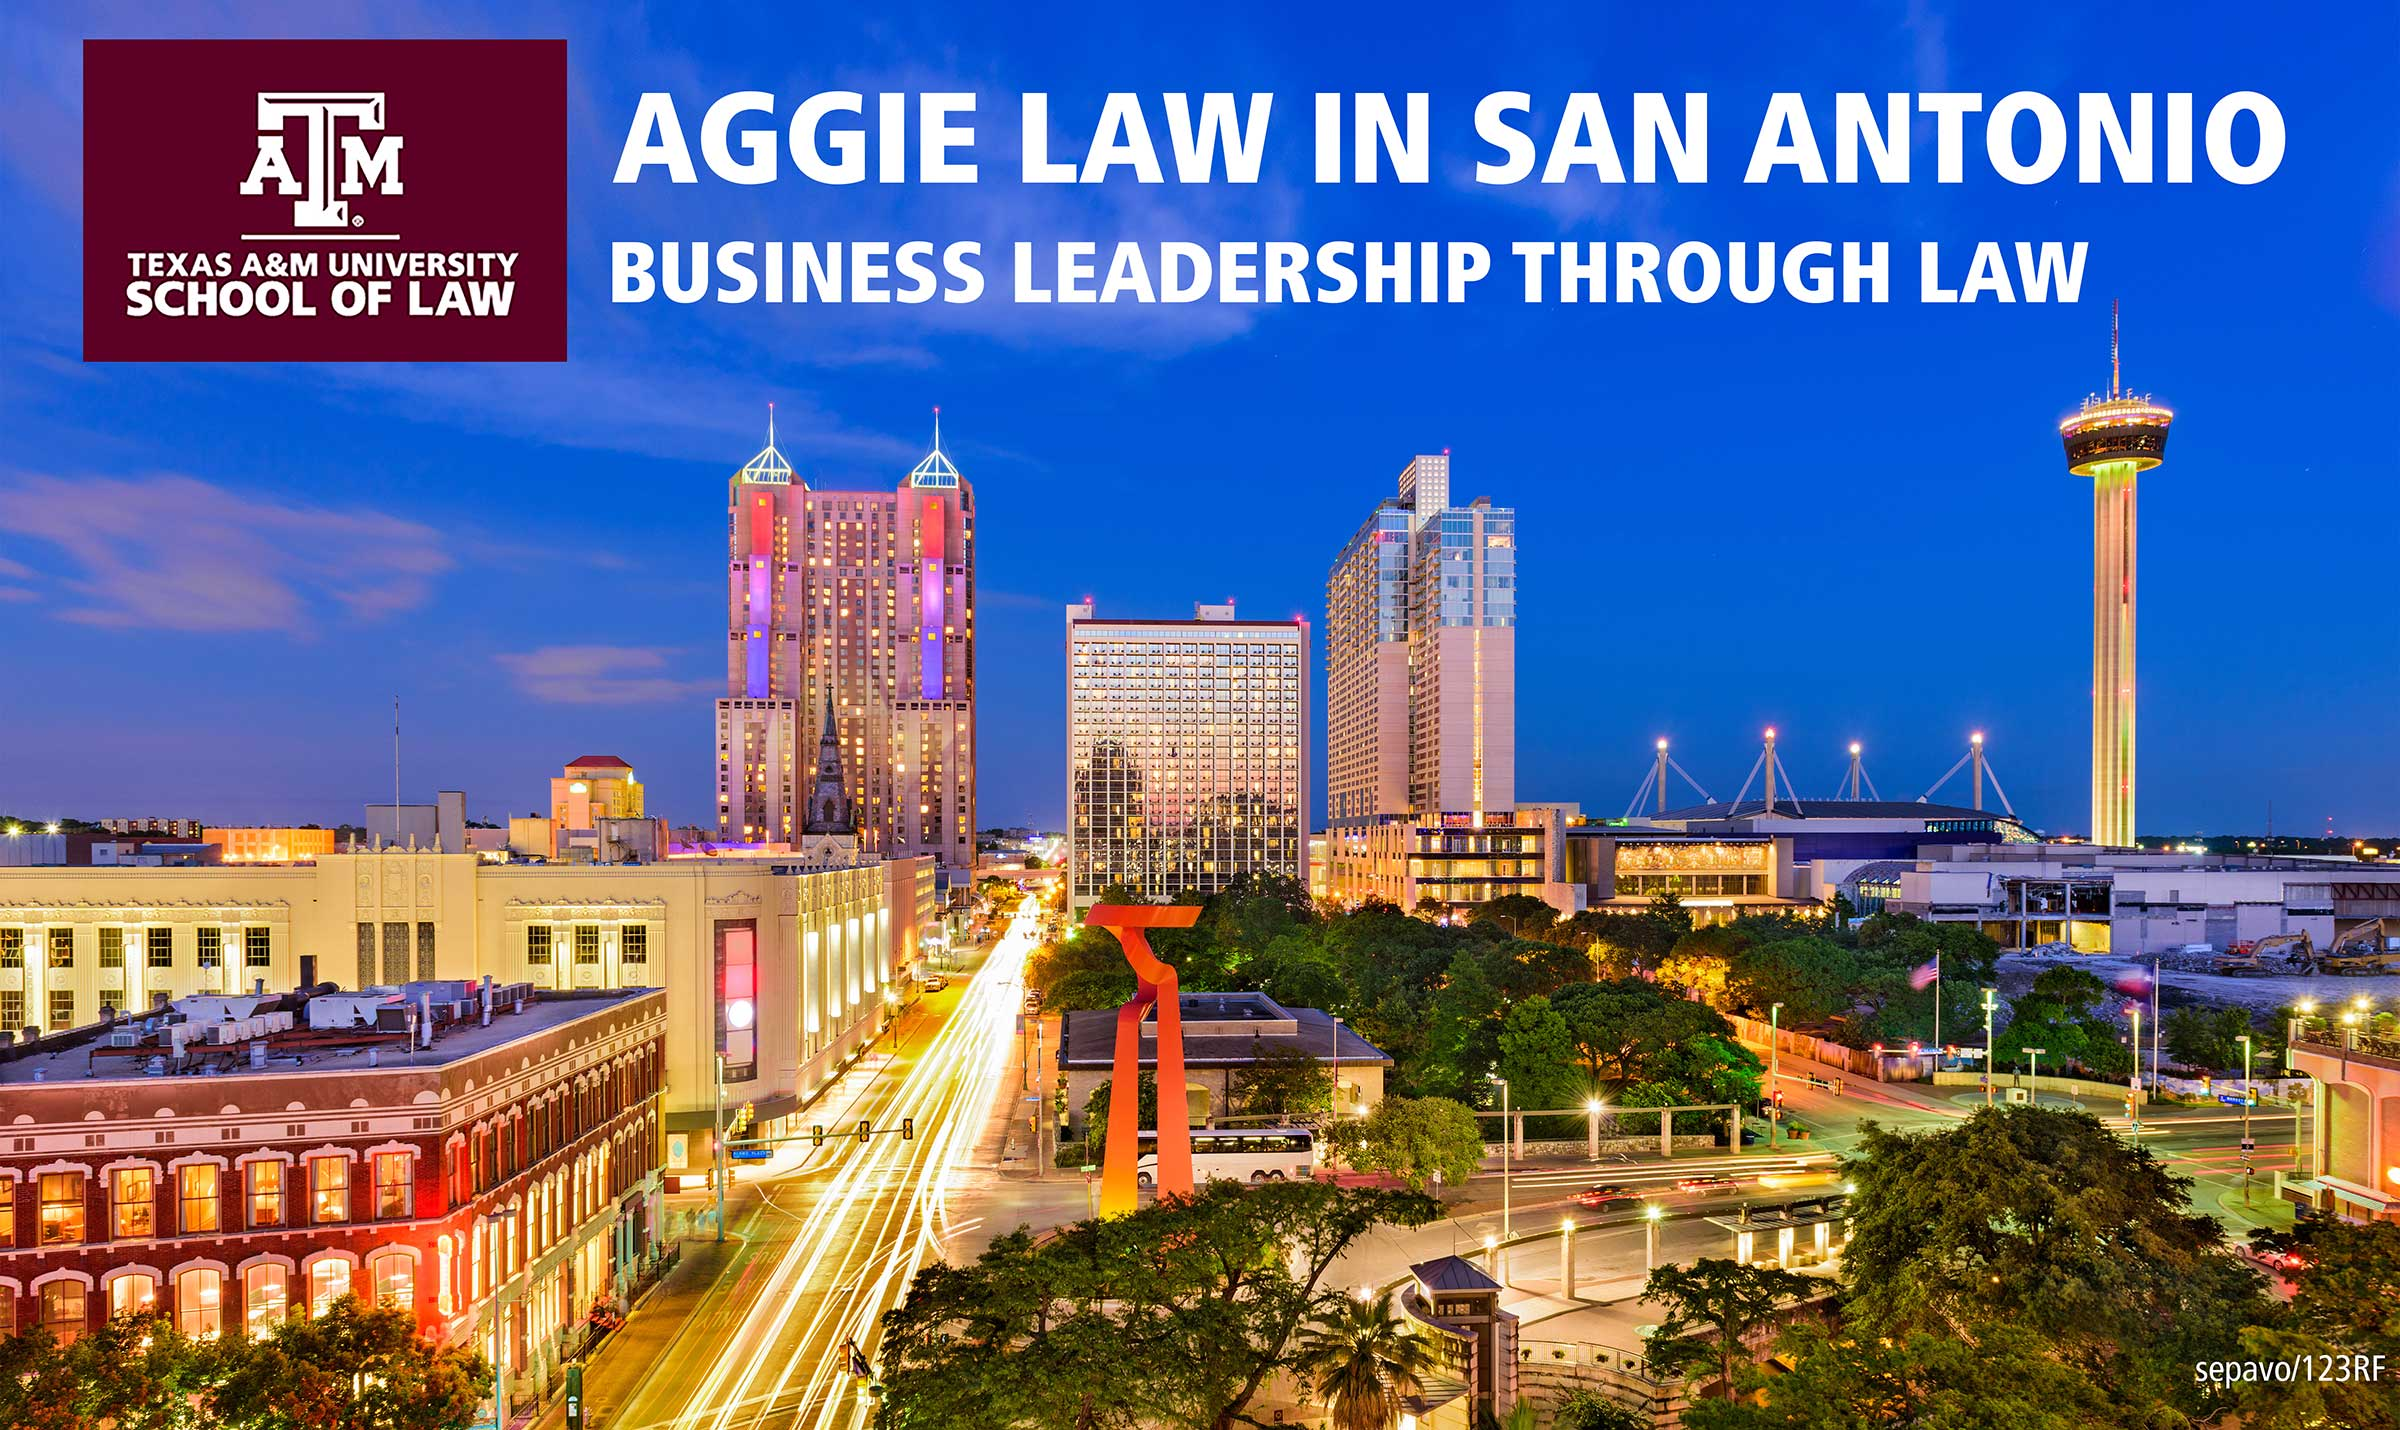 Aggie Law in San Antonio